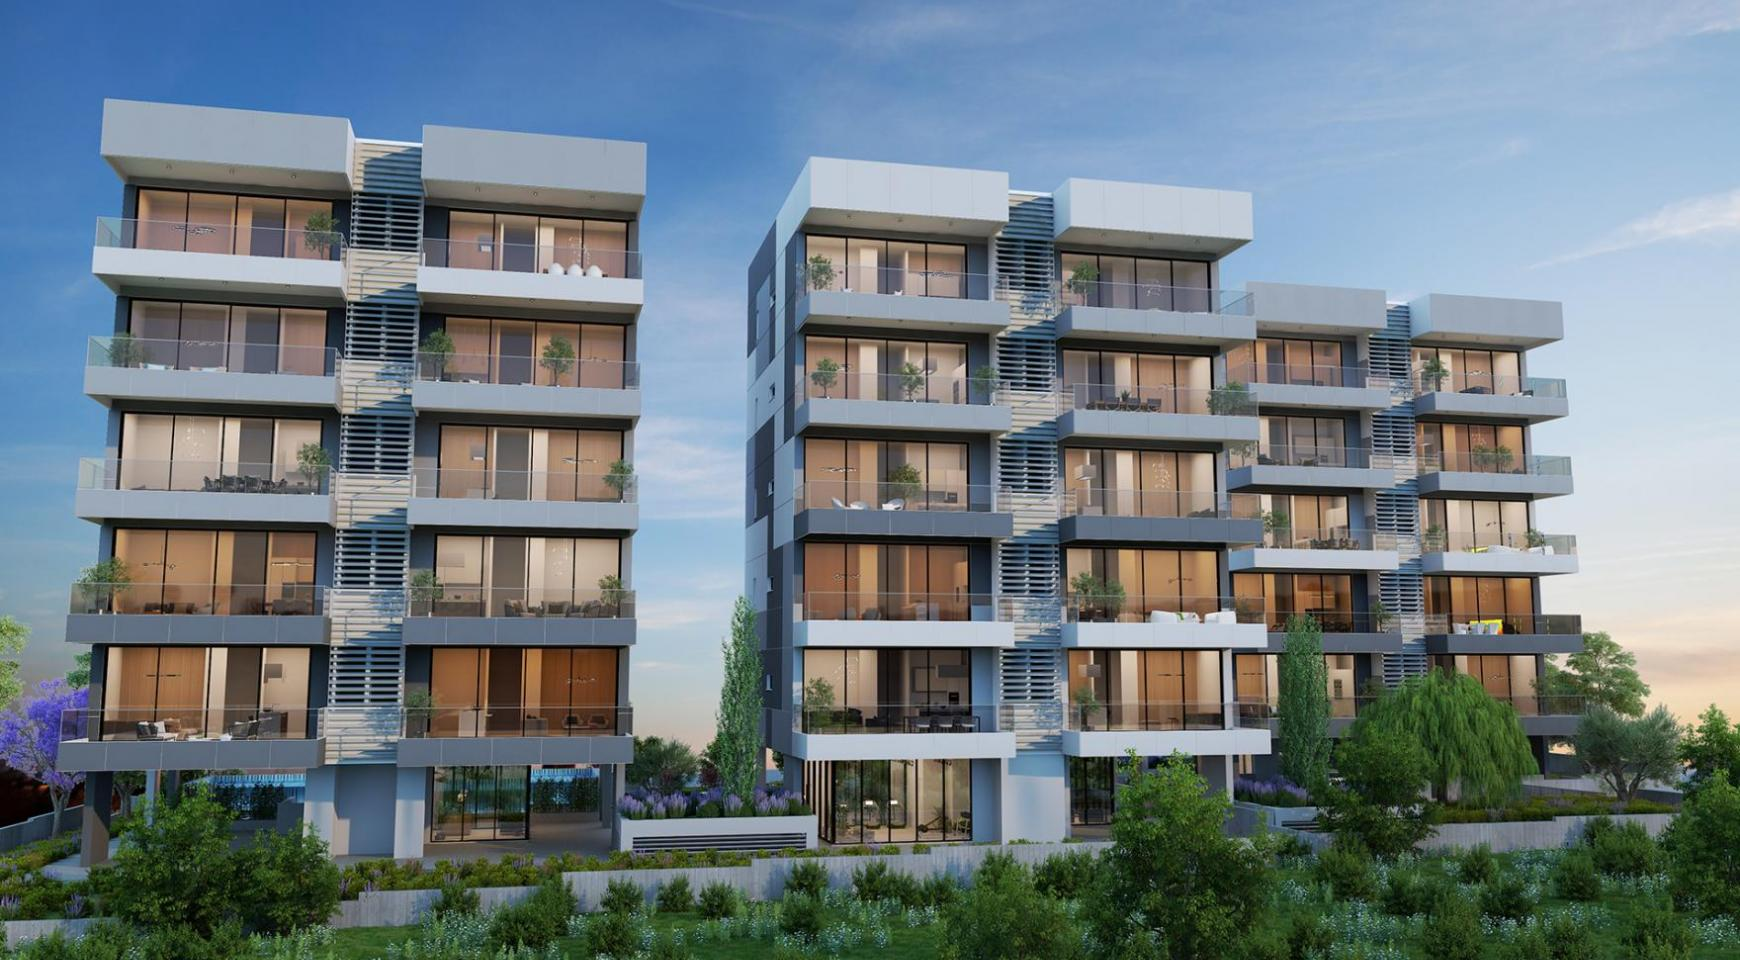 Urban City Residences, Block B. New Spacious 2 Bedroom Apartment 302 in the City Centre - 22